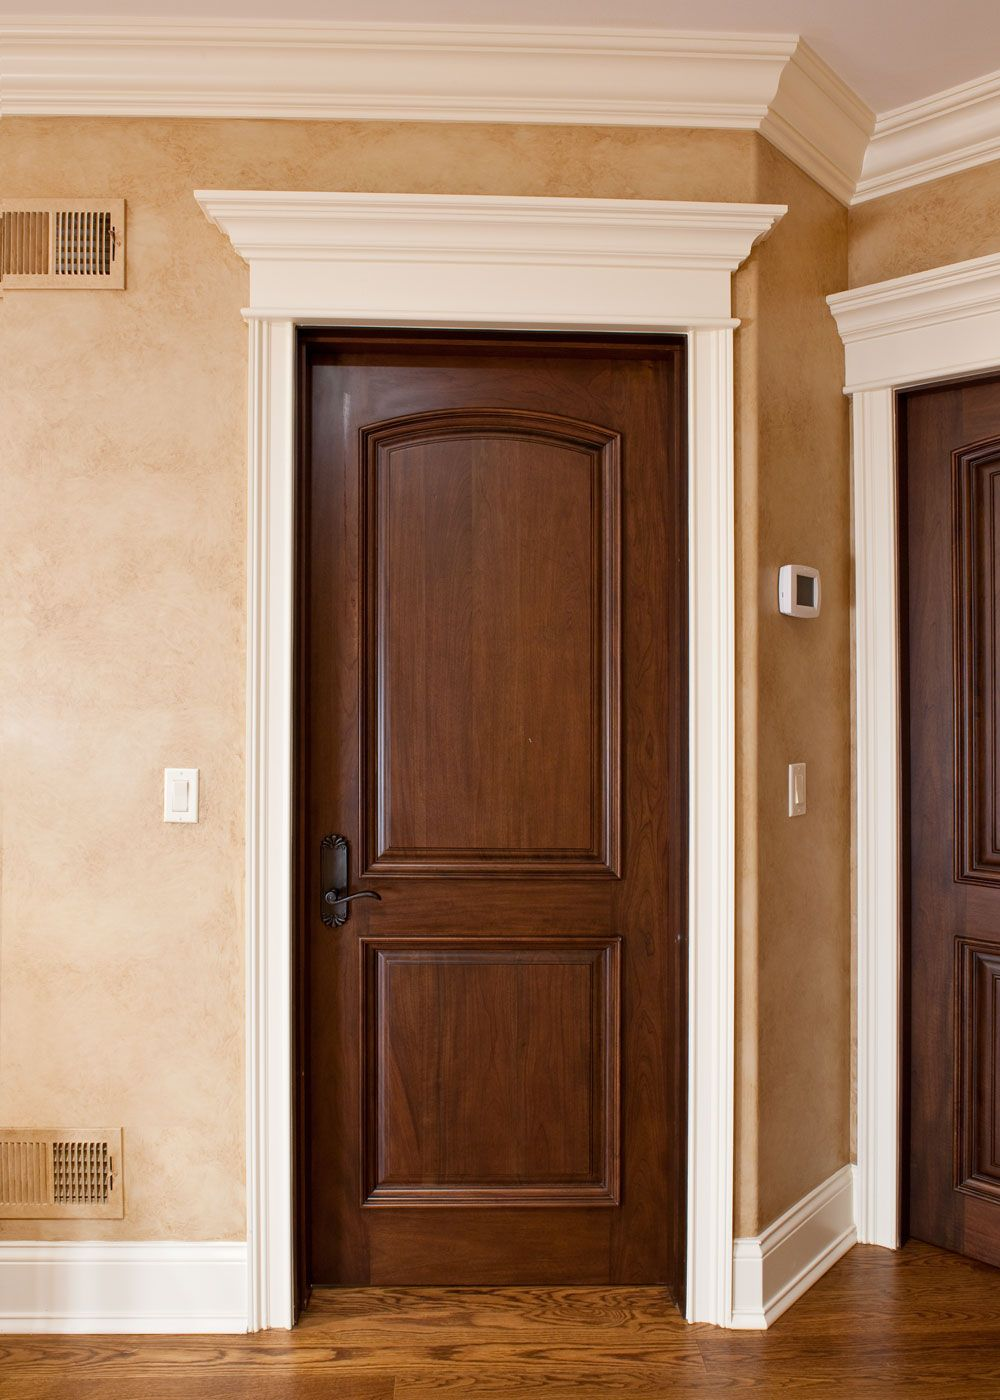 Attractive Interior Door Custom   Single   Solid Wood With Walnut Finish, Classic,  Model DBI